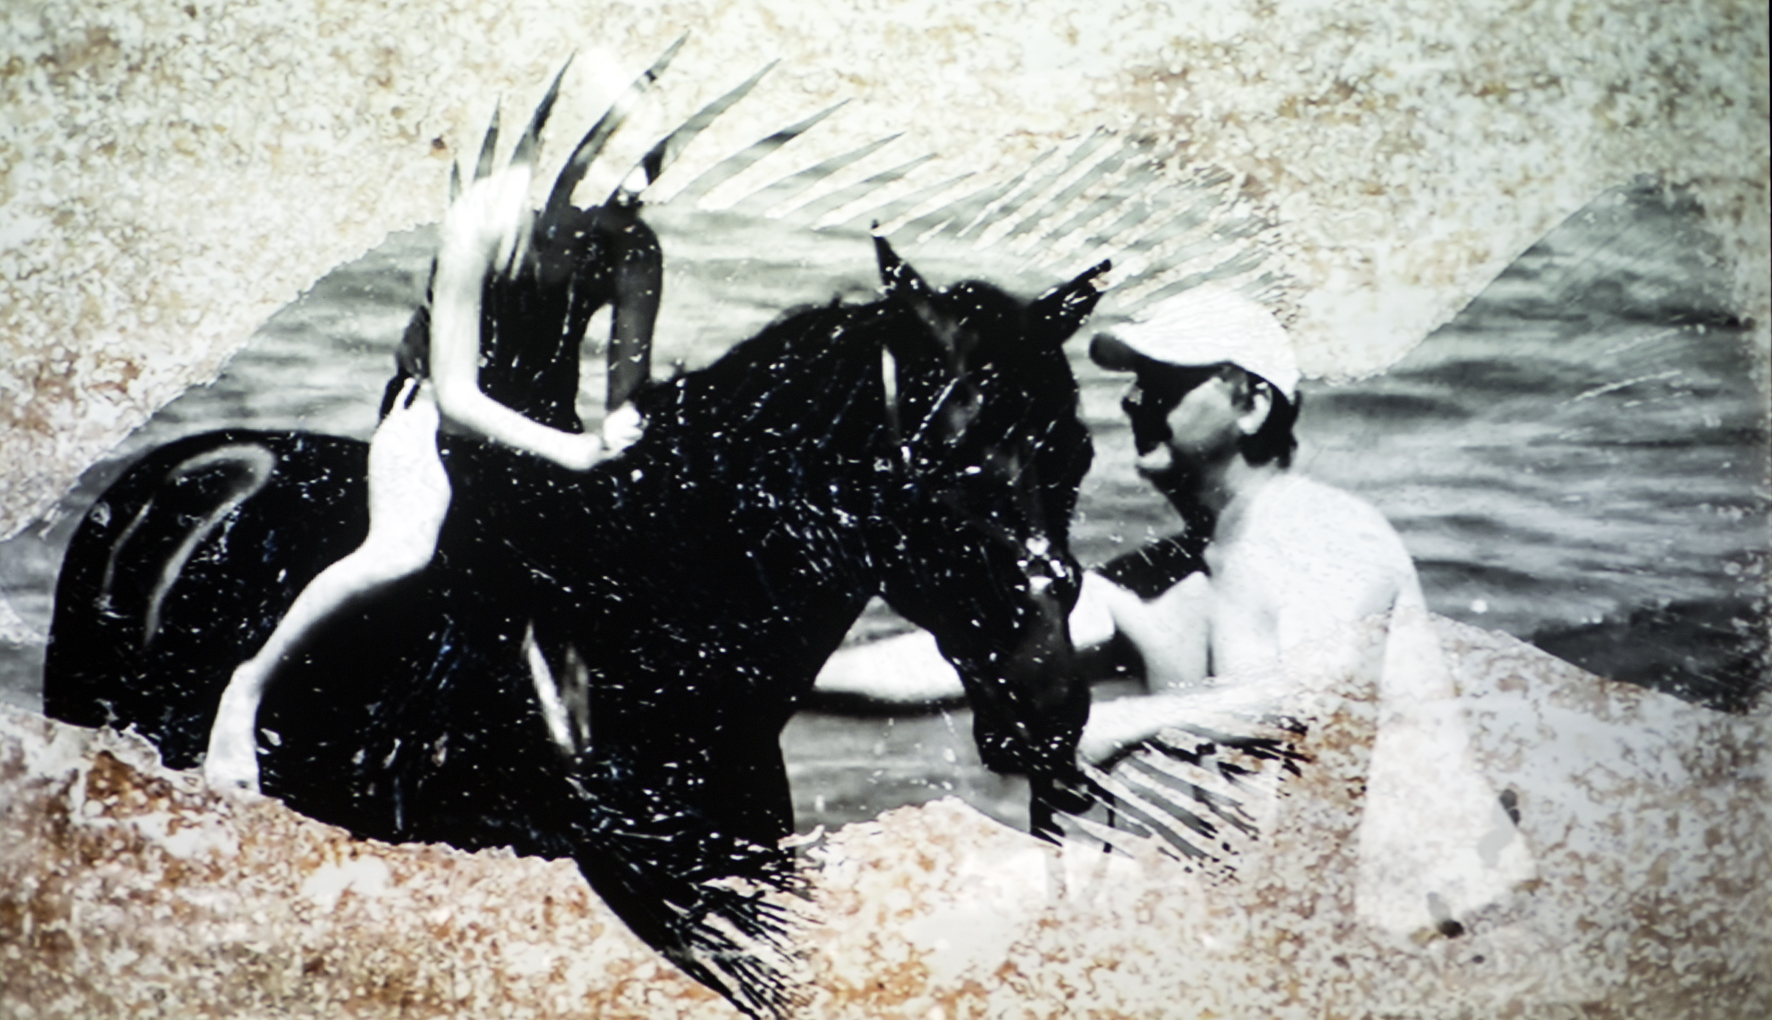 A photo collage of a girl on a horse being wrangled by a man. An image of a fish is imposed on the background.